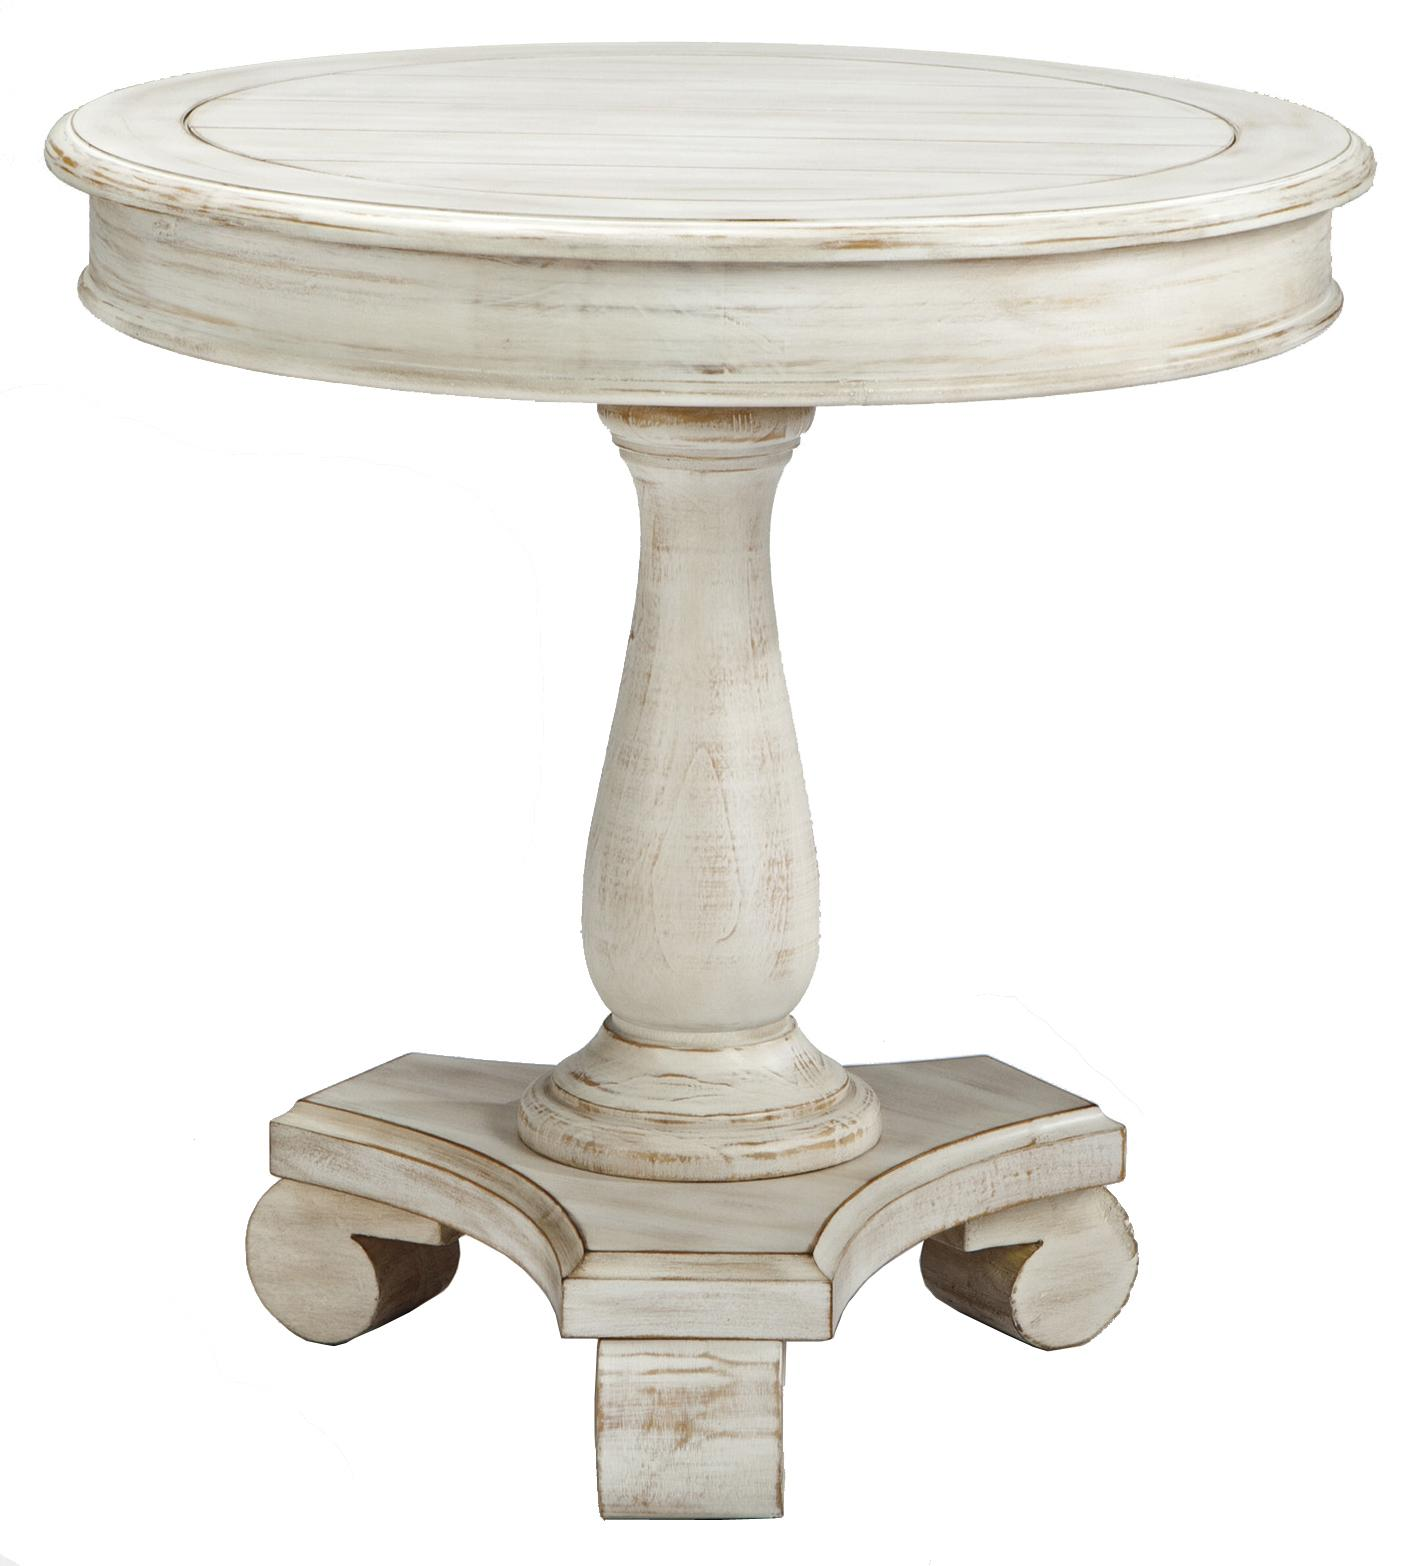 pedestal accent table squidrealms implausible round with turned base signature design interior simplify adjustable ikea small outside patio cover wood floor door threshold gold